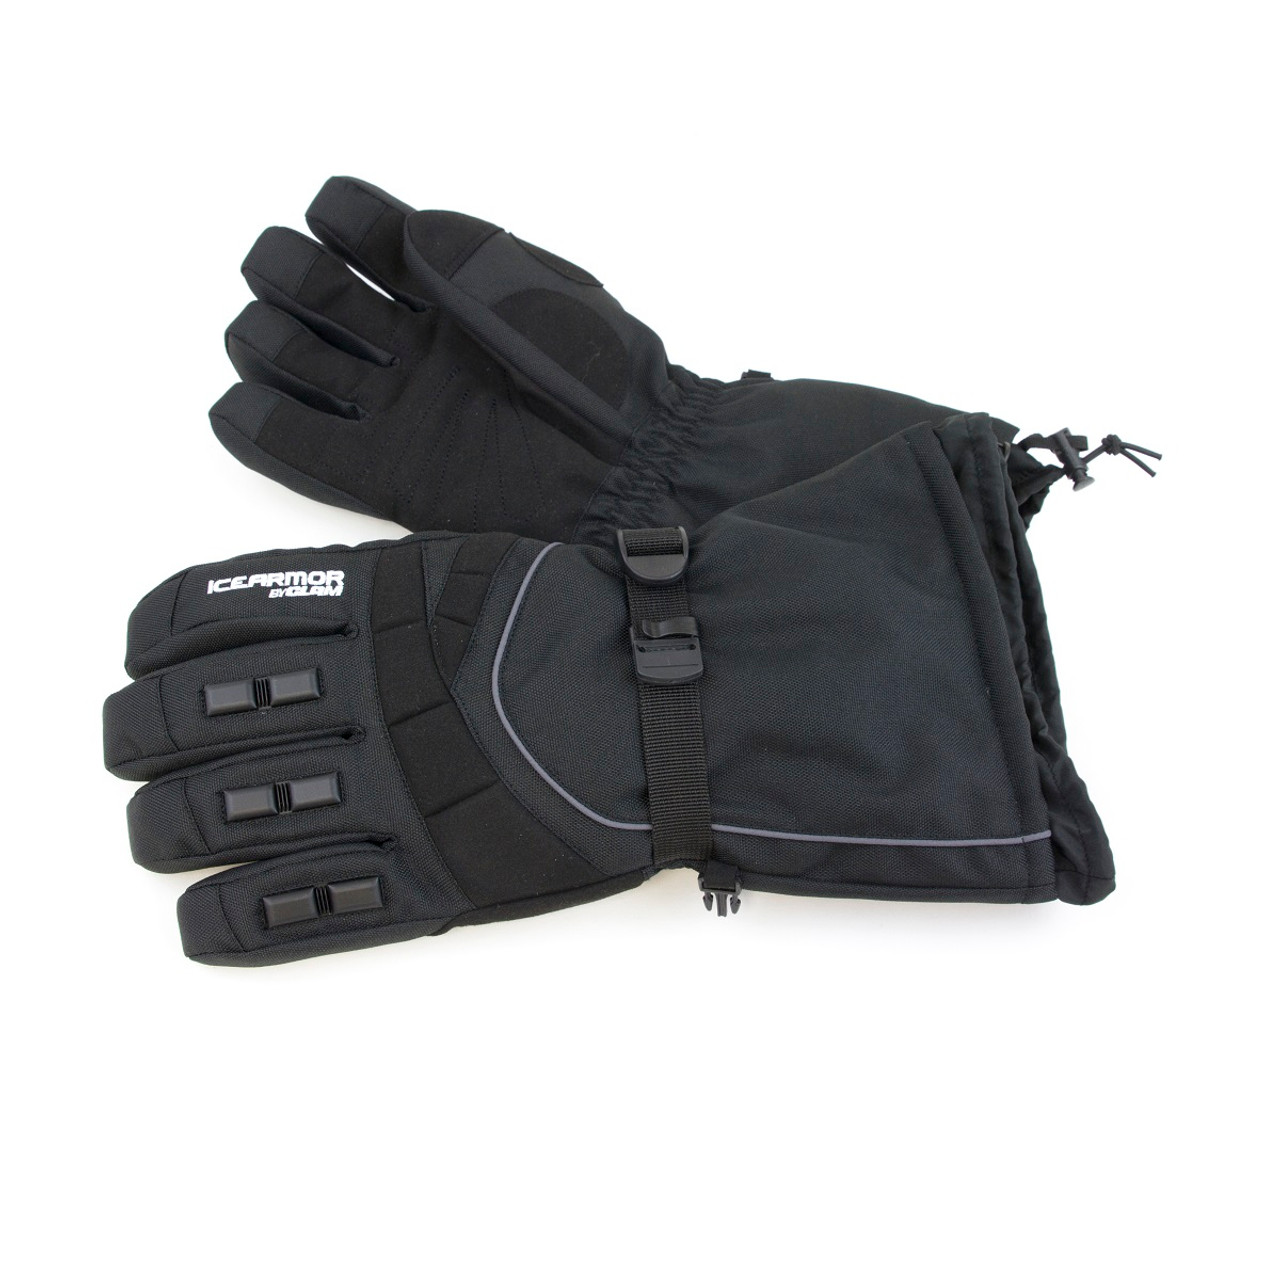 Clam Outdoors IceArmor Extreme Ice Fishing Gloves